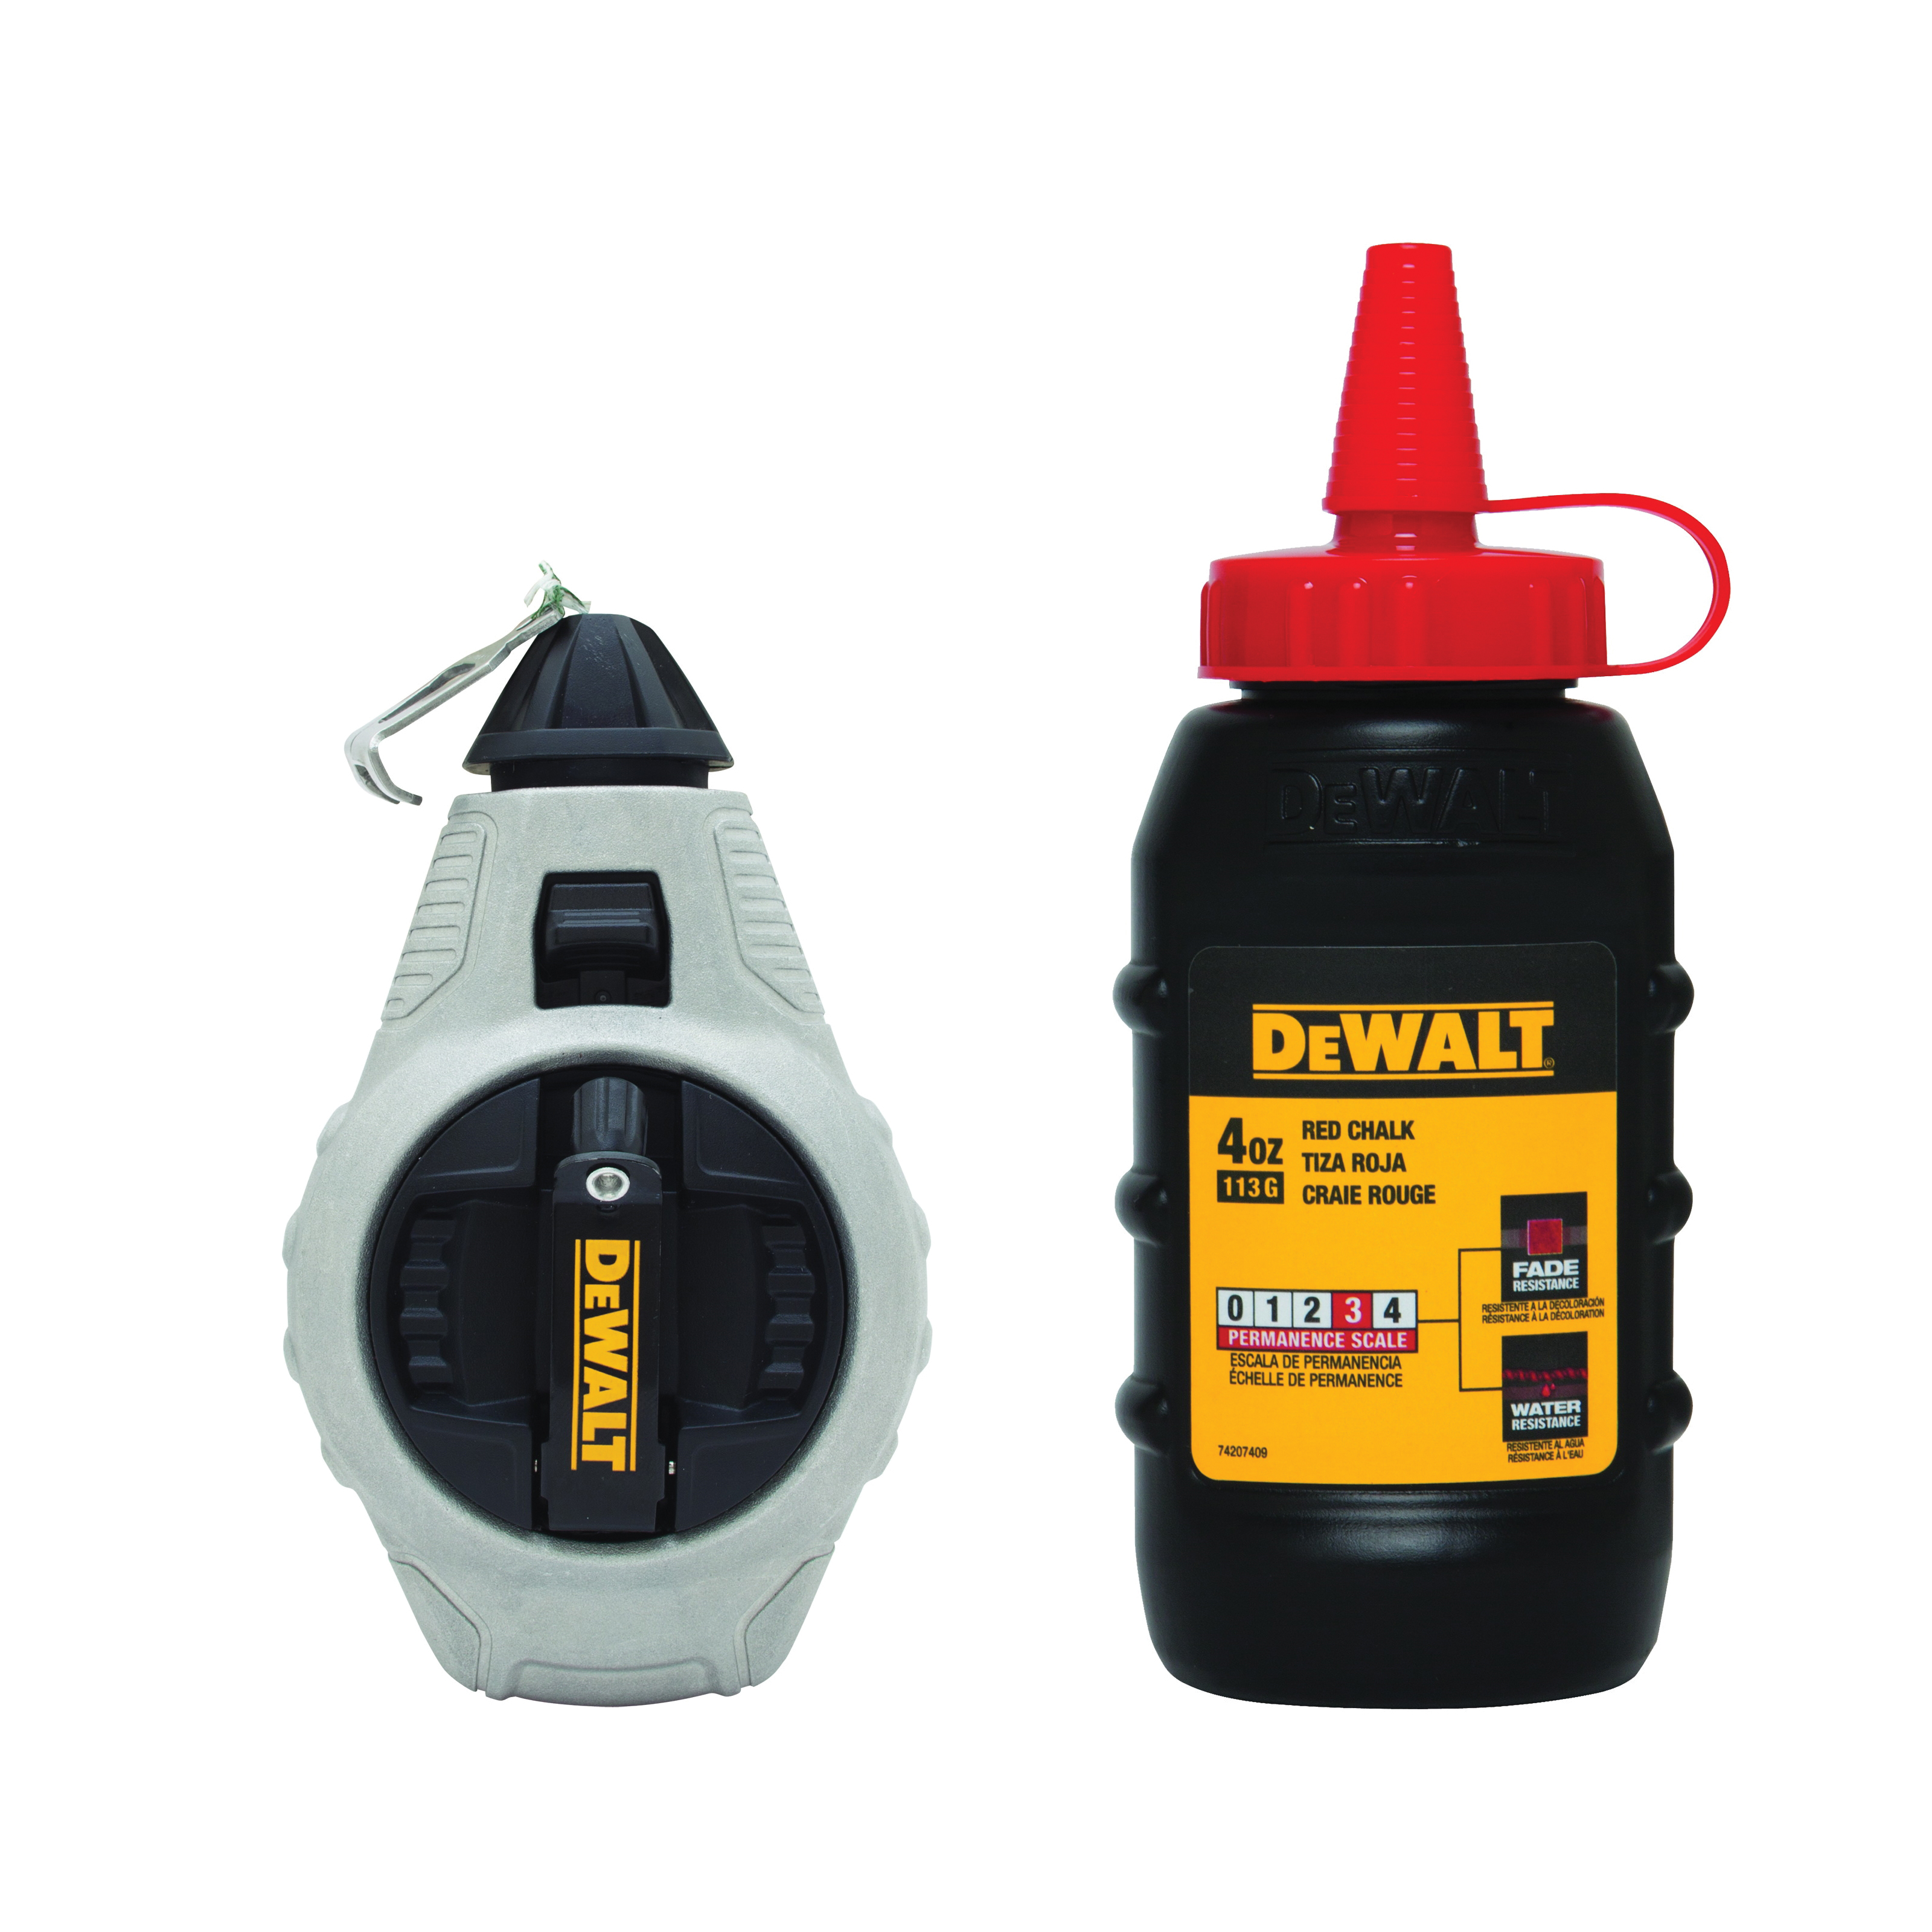 DeWALT® DWHT47376L Chalk Line Reel With Red Chalk, 100 ft L Polyester Line, 4 oz Chalk, Sliding Door, Folding Crank Handle